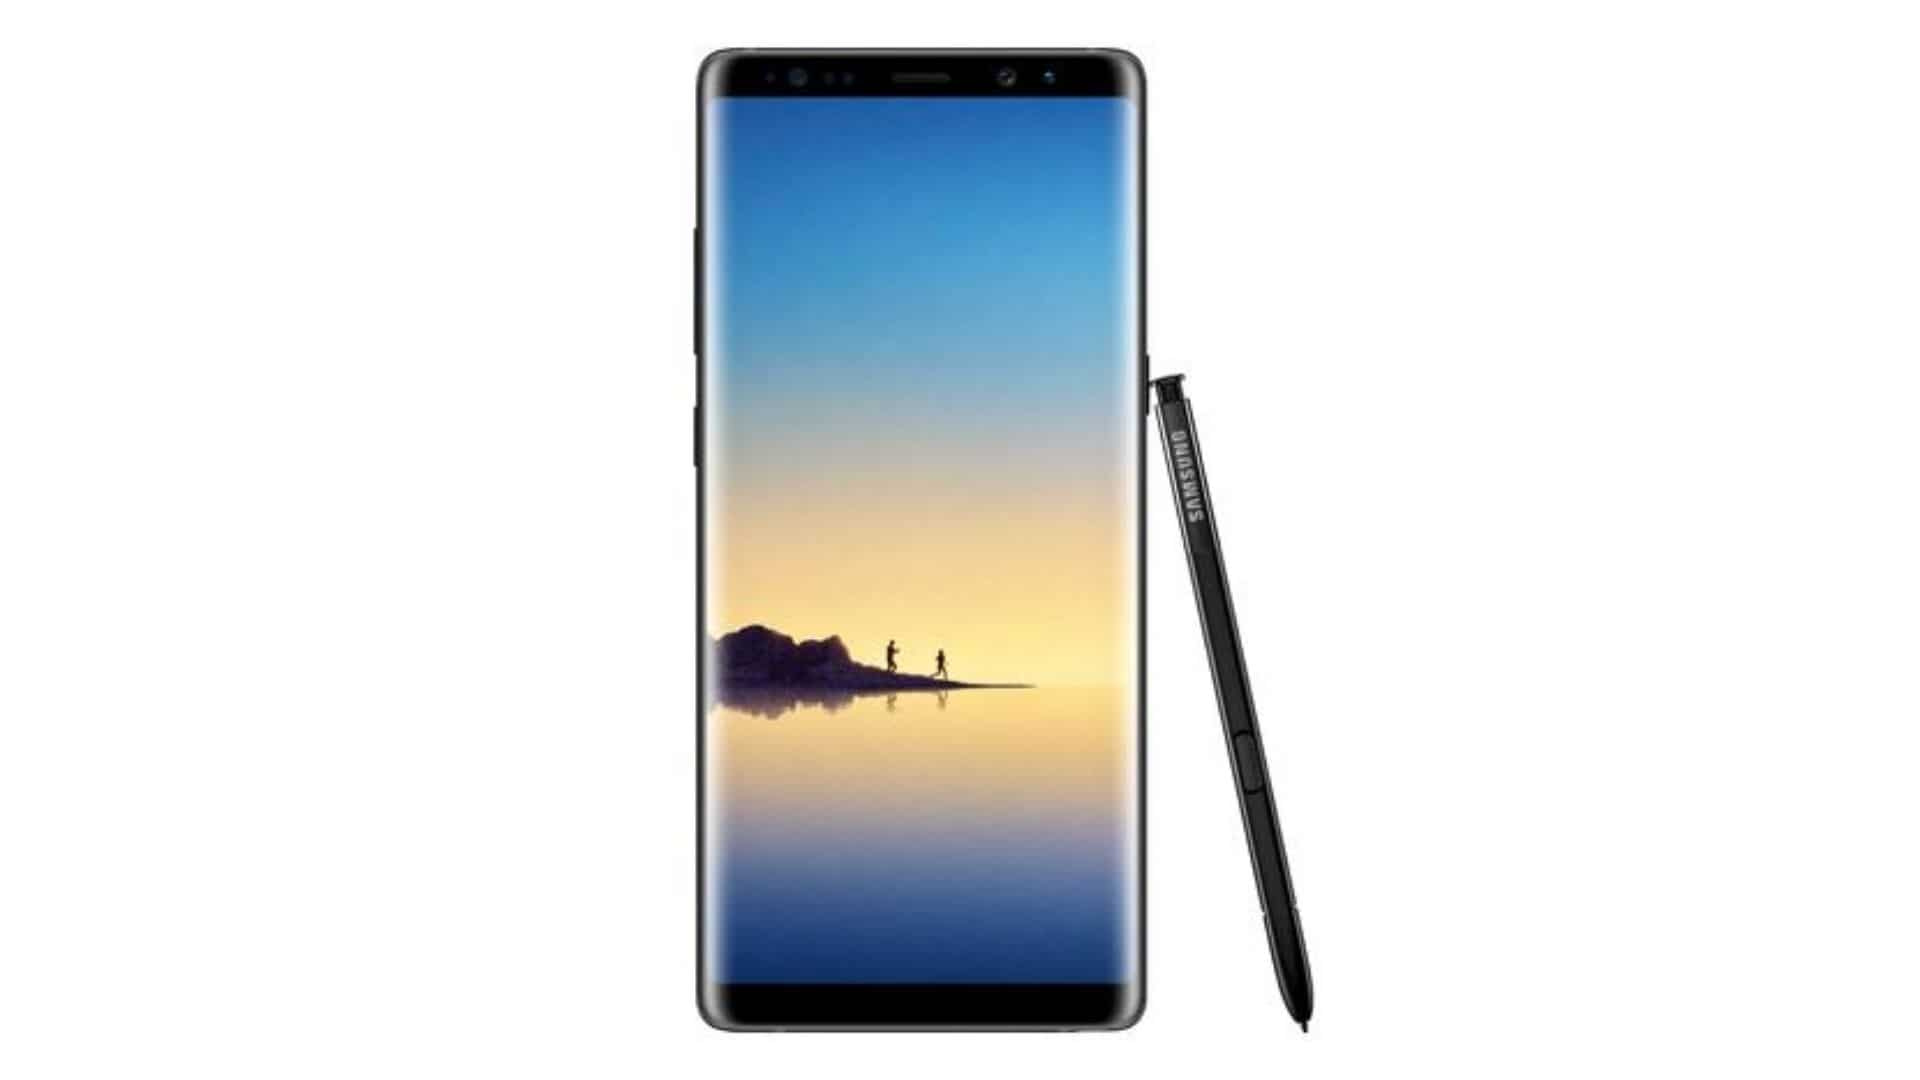 The Galaxy Note 8 offered a more premium-looking and still looks pretty good even now. It has a tall 6.3-inch QHD+ Super AMOLED display, dual rear cameras and 6GB of RAM. The phone offers up to 256GB of internal storage. Galaxy Note 8 launched with Android Nougat out-of-the-box.